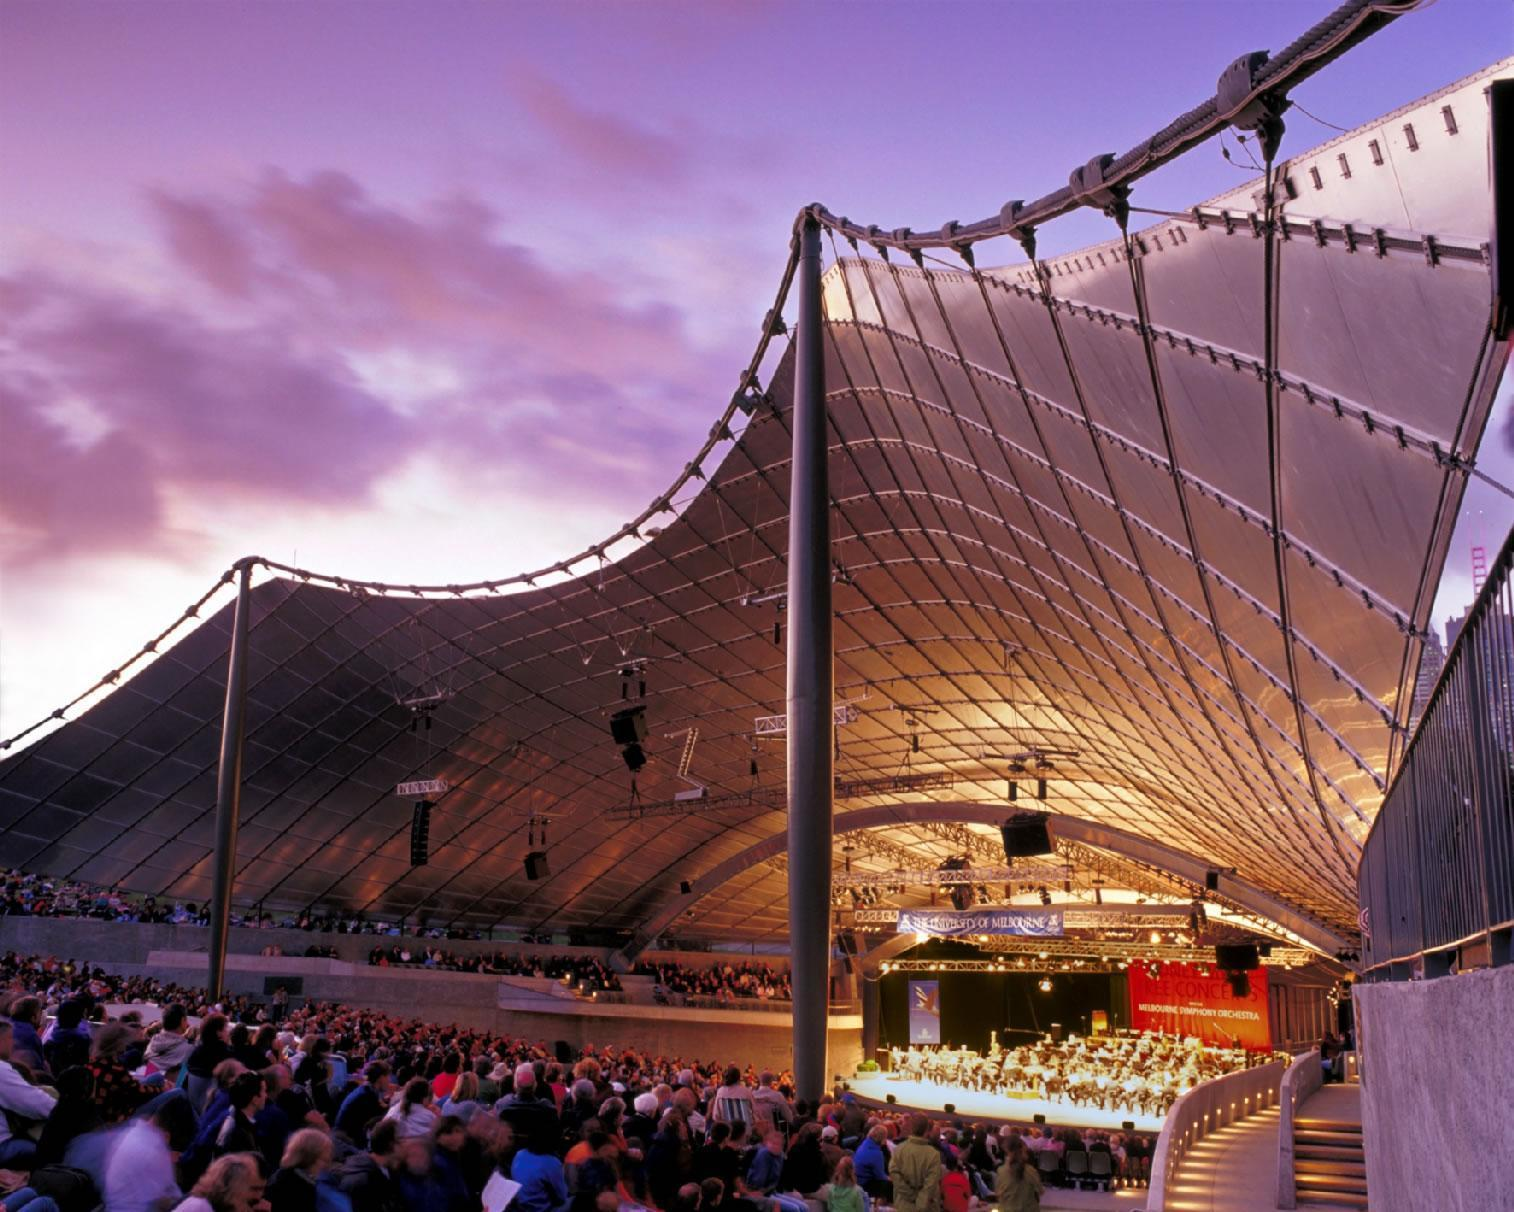 Sidney Myer Music Bowl to reopen on October 30 with a concert for thousands